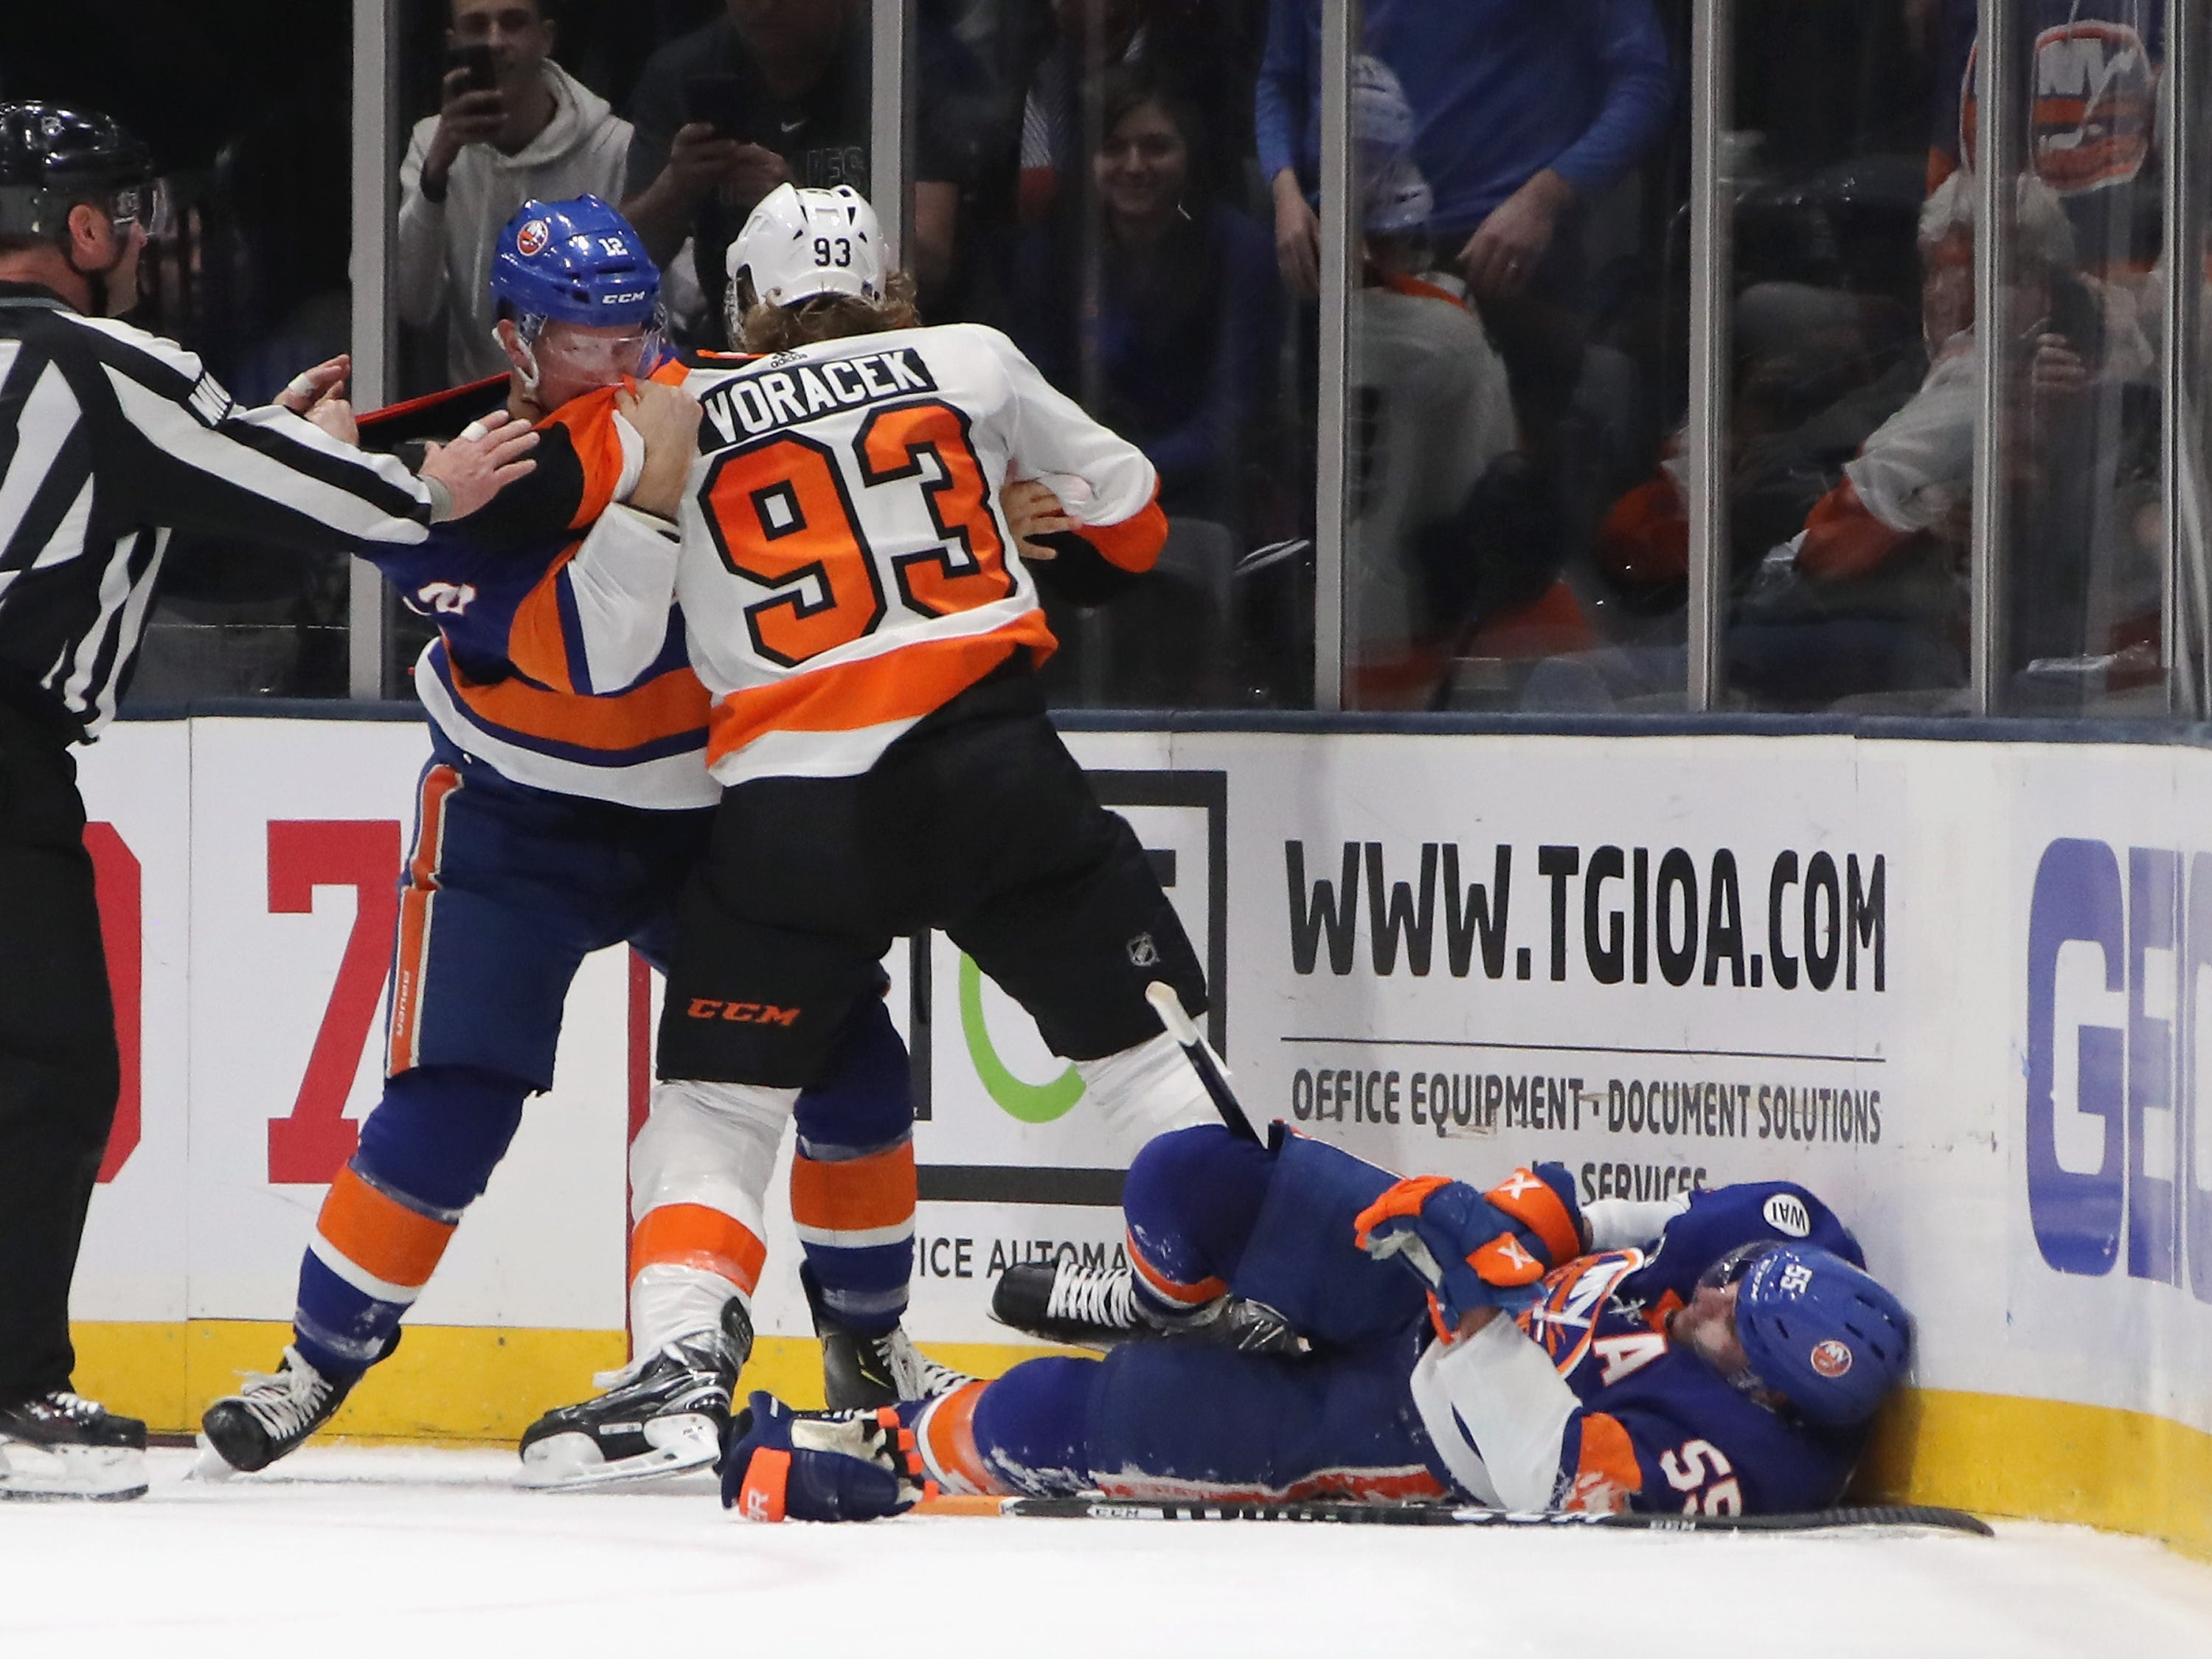 March 10: Philadelphia Flyers forward Jakub Voracek was suspended for two games for interference against New York Islanders defenseman Johnny Boychuk. Lost pay: $88,709.68.